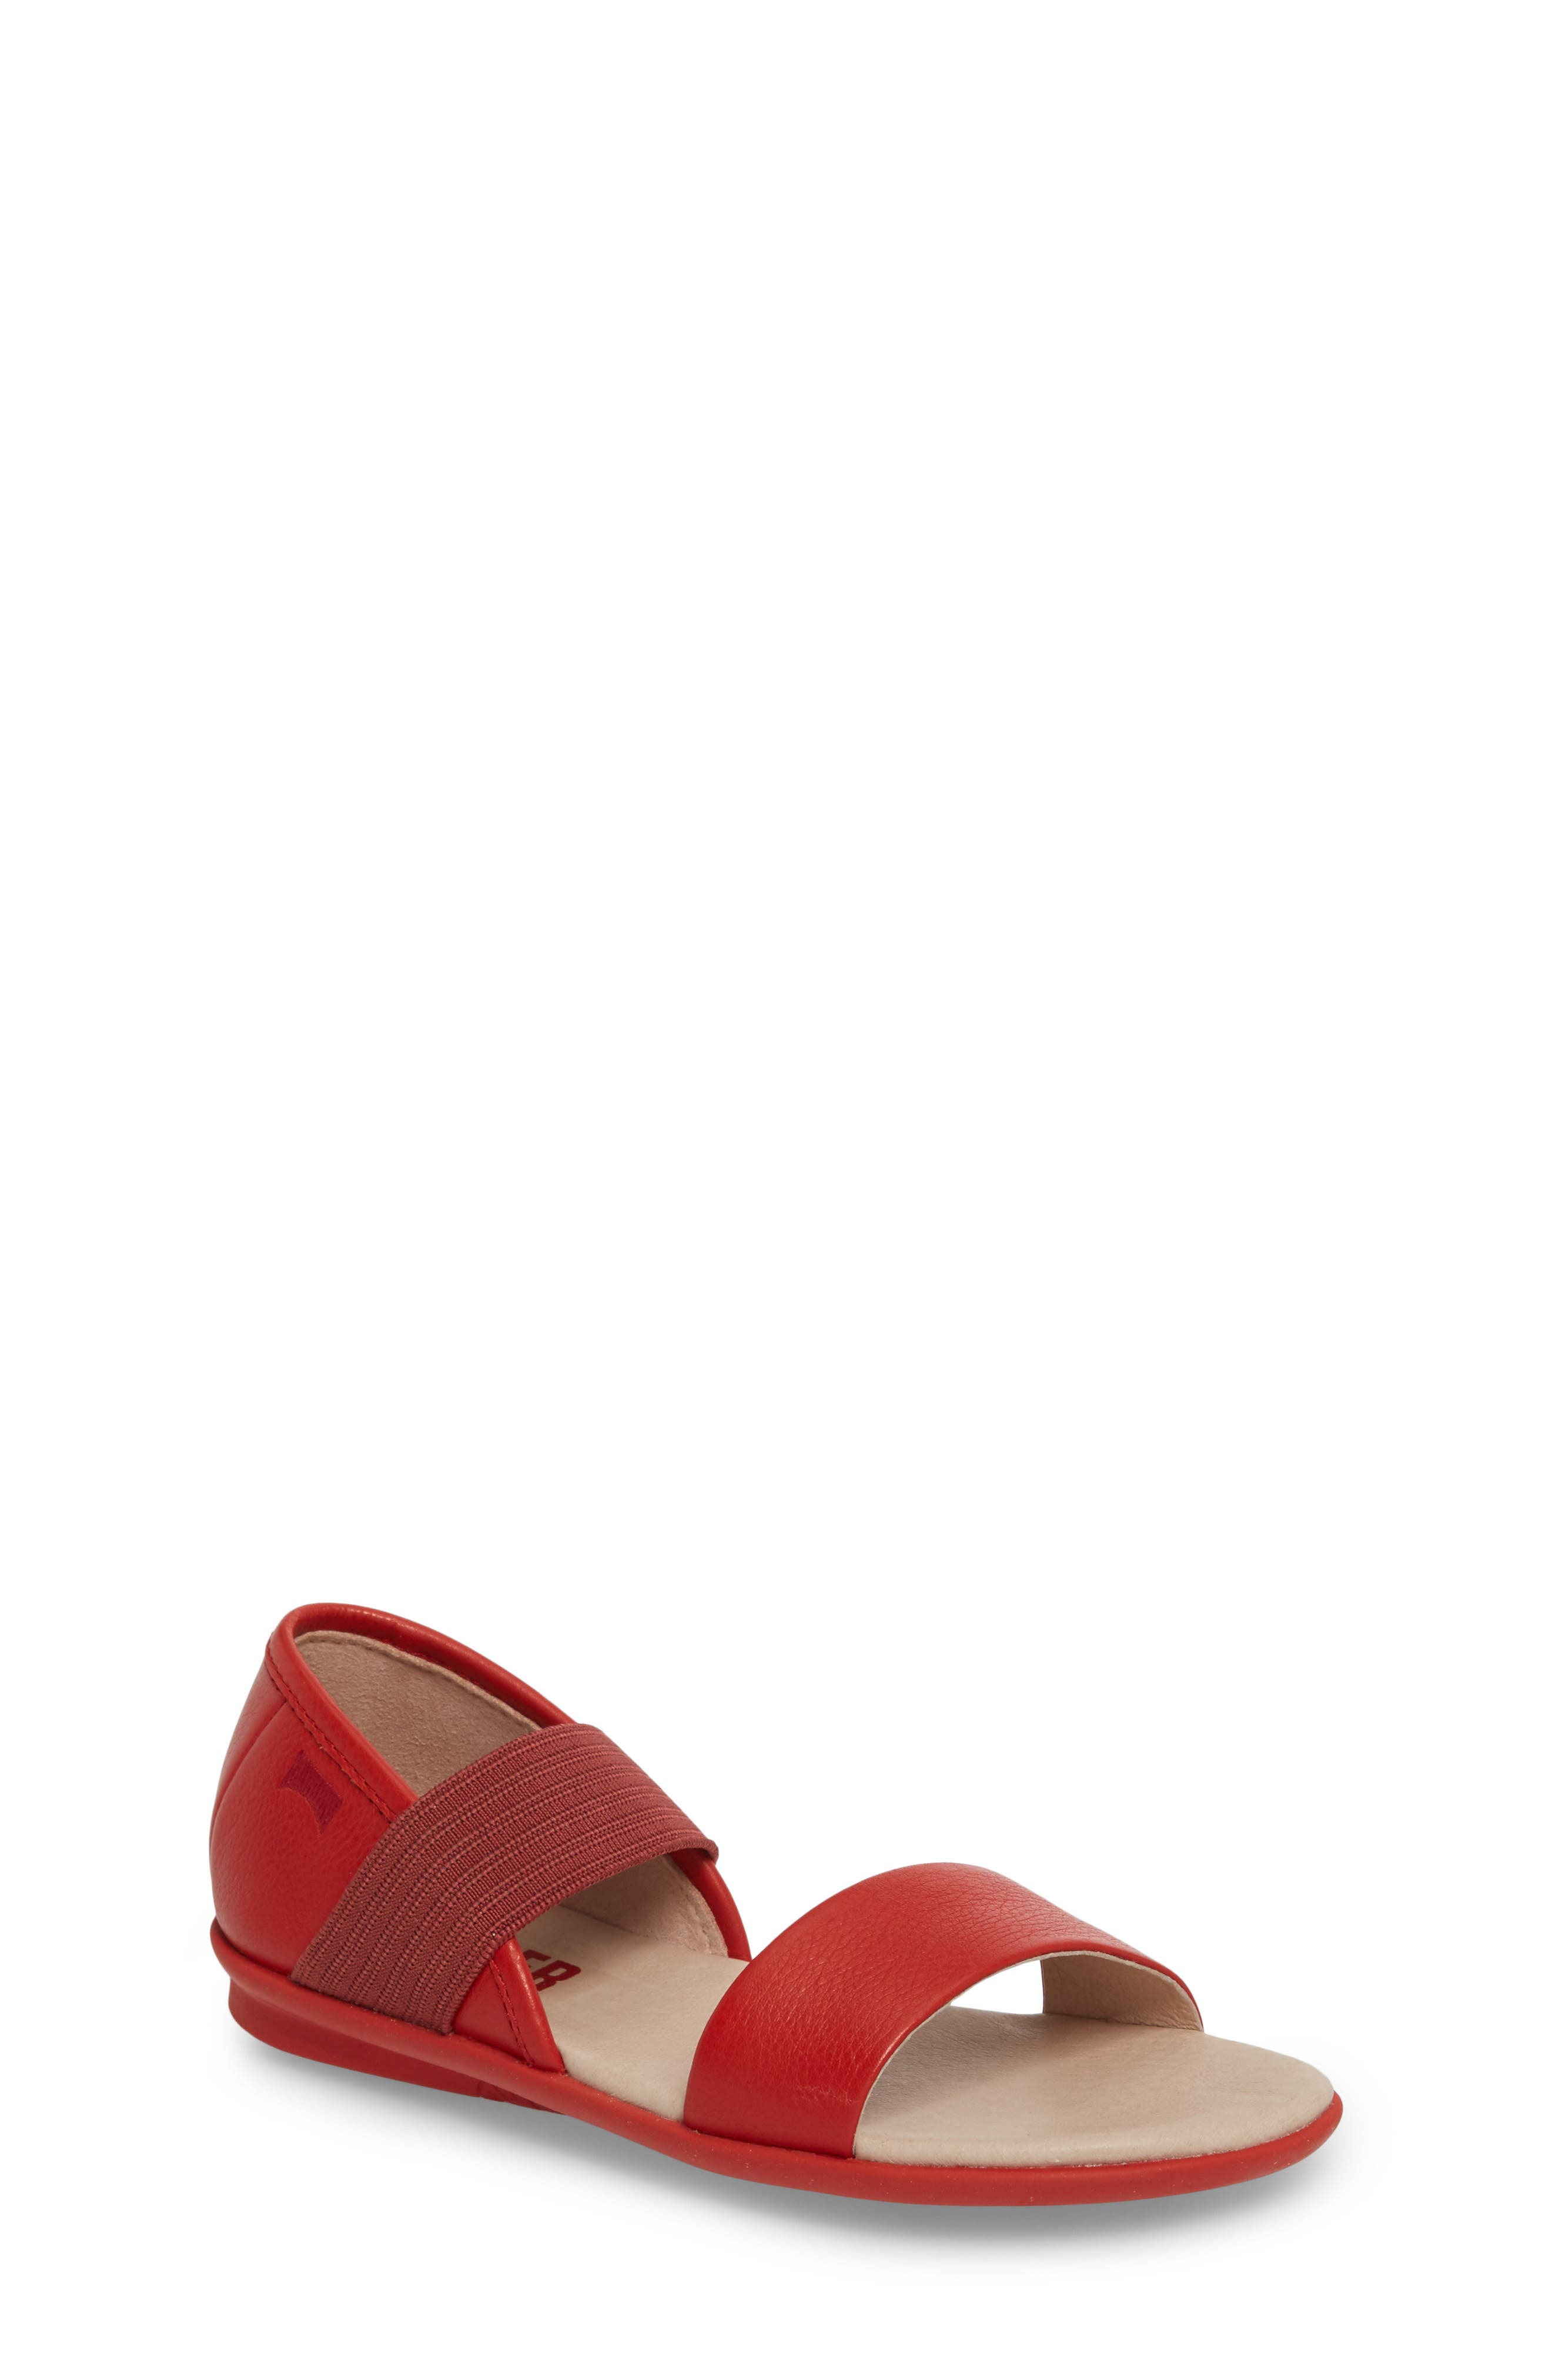 Right Sandal,                             Main thumbnail 1, color,                             Red